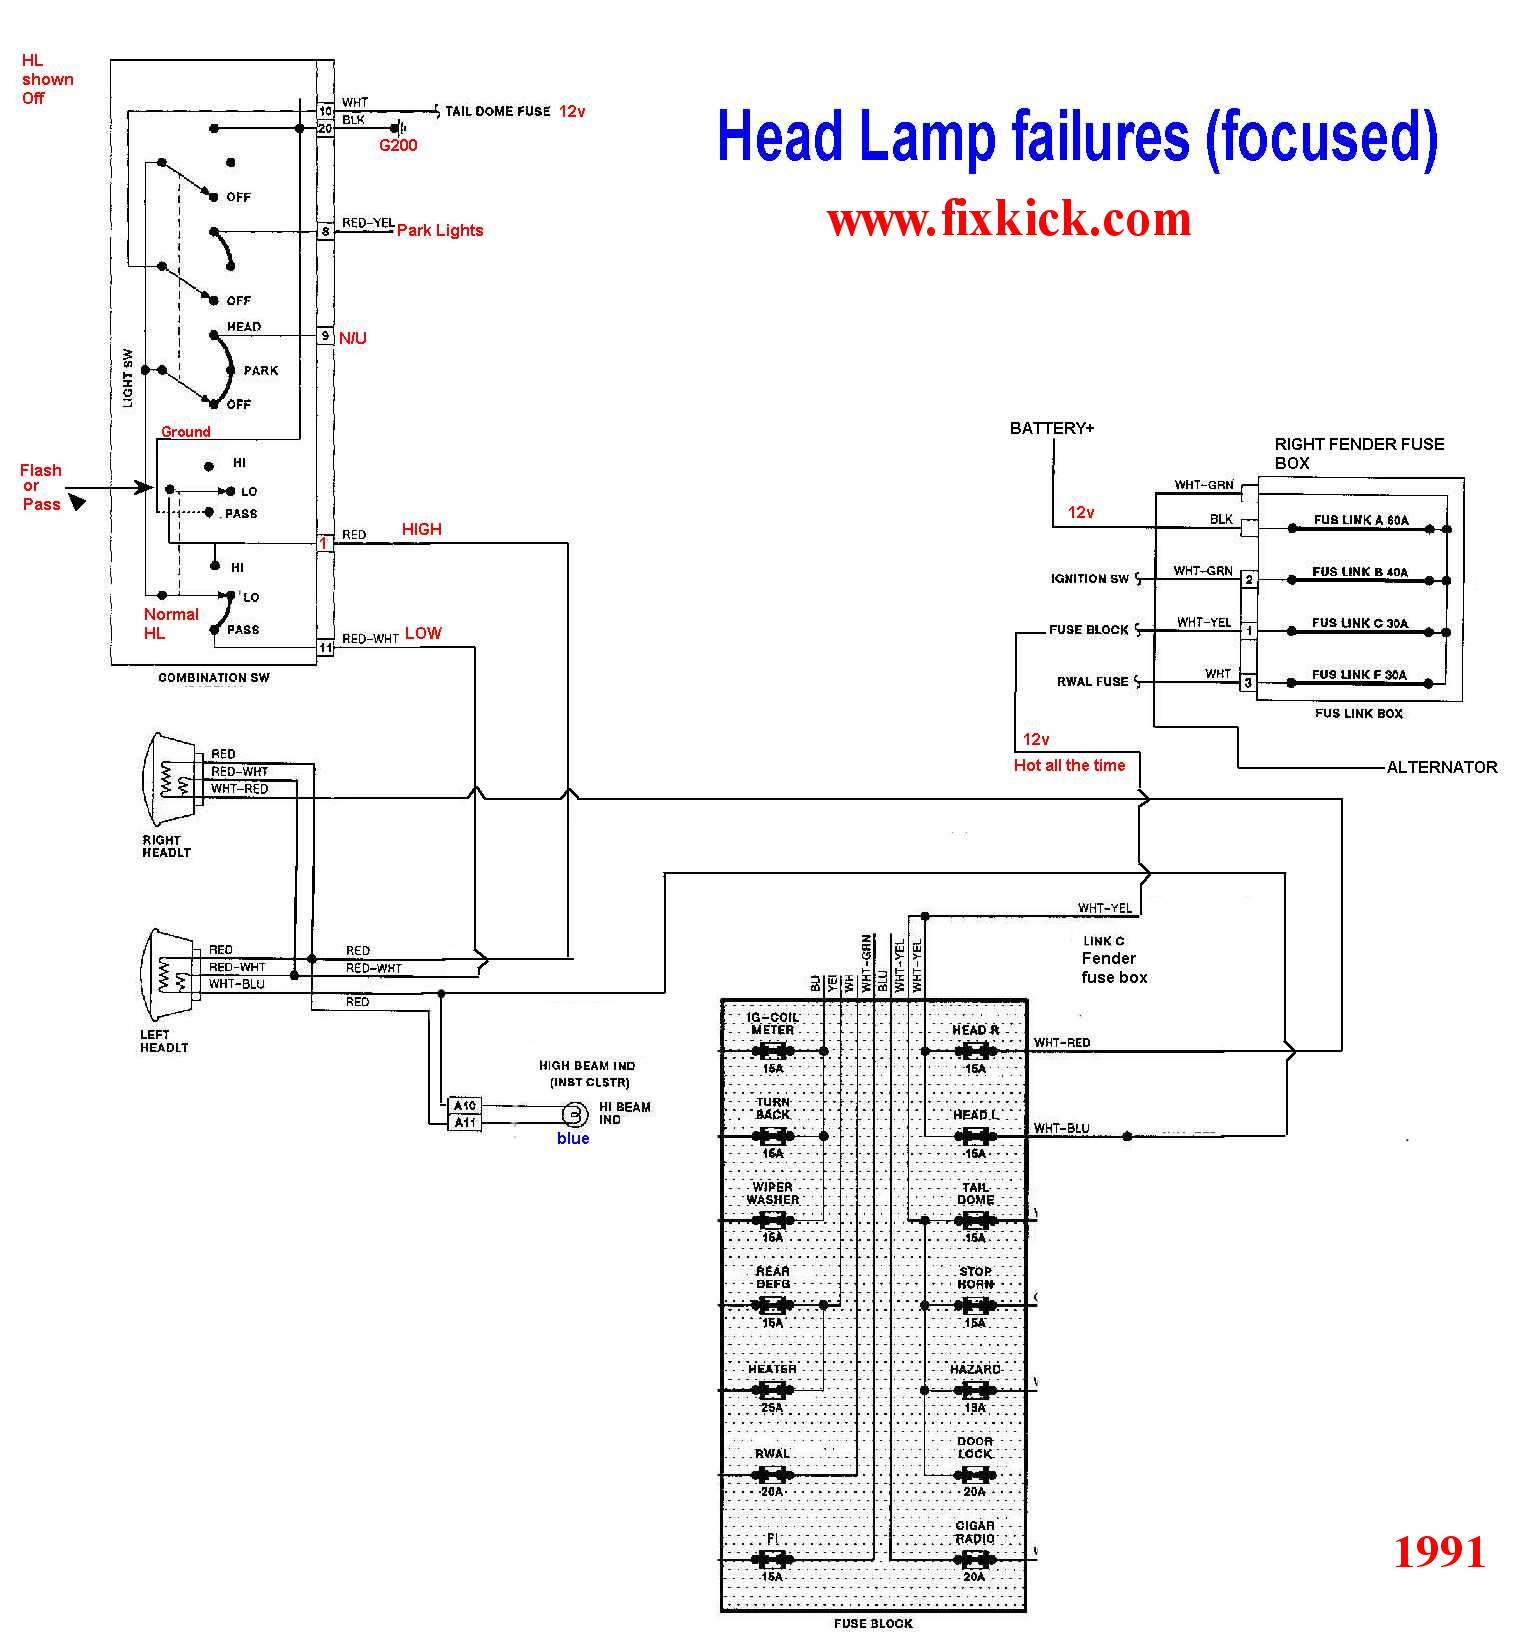 93 sable headlight wiring diagram wiring library93 sable headlight wiring diagram